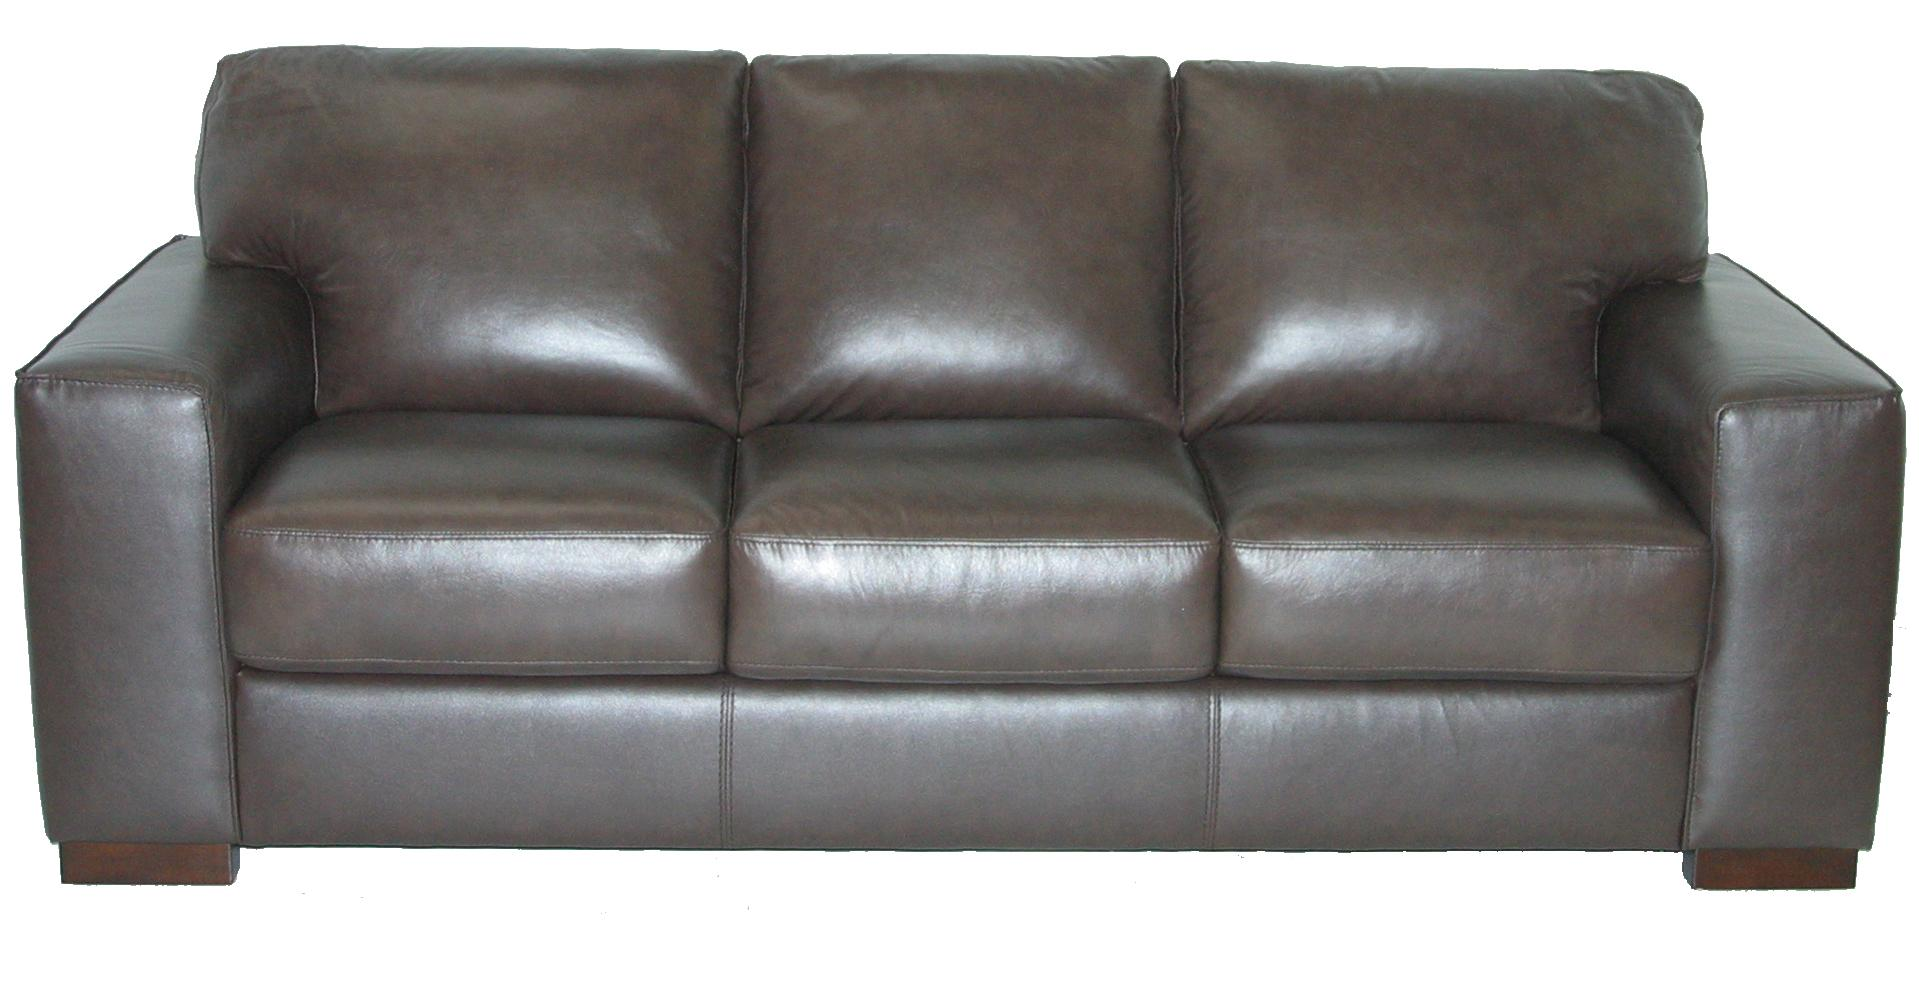 30480 Sofa by Violino at Furniture Superstore - Rochester, MN